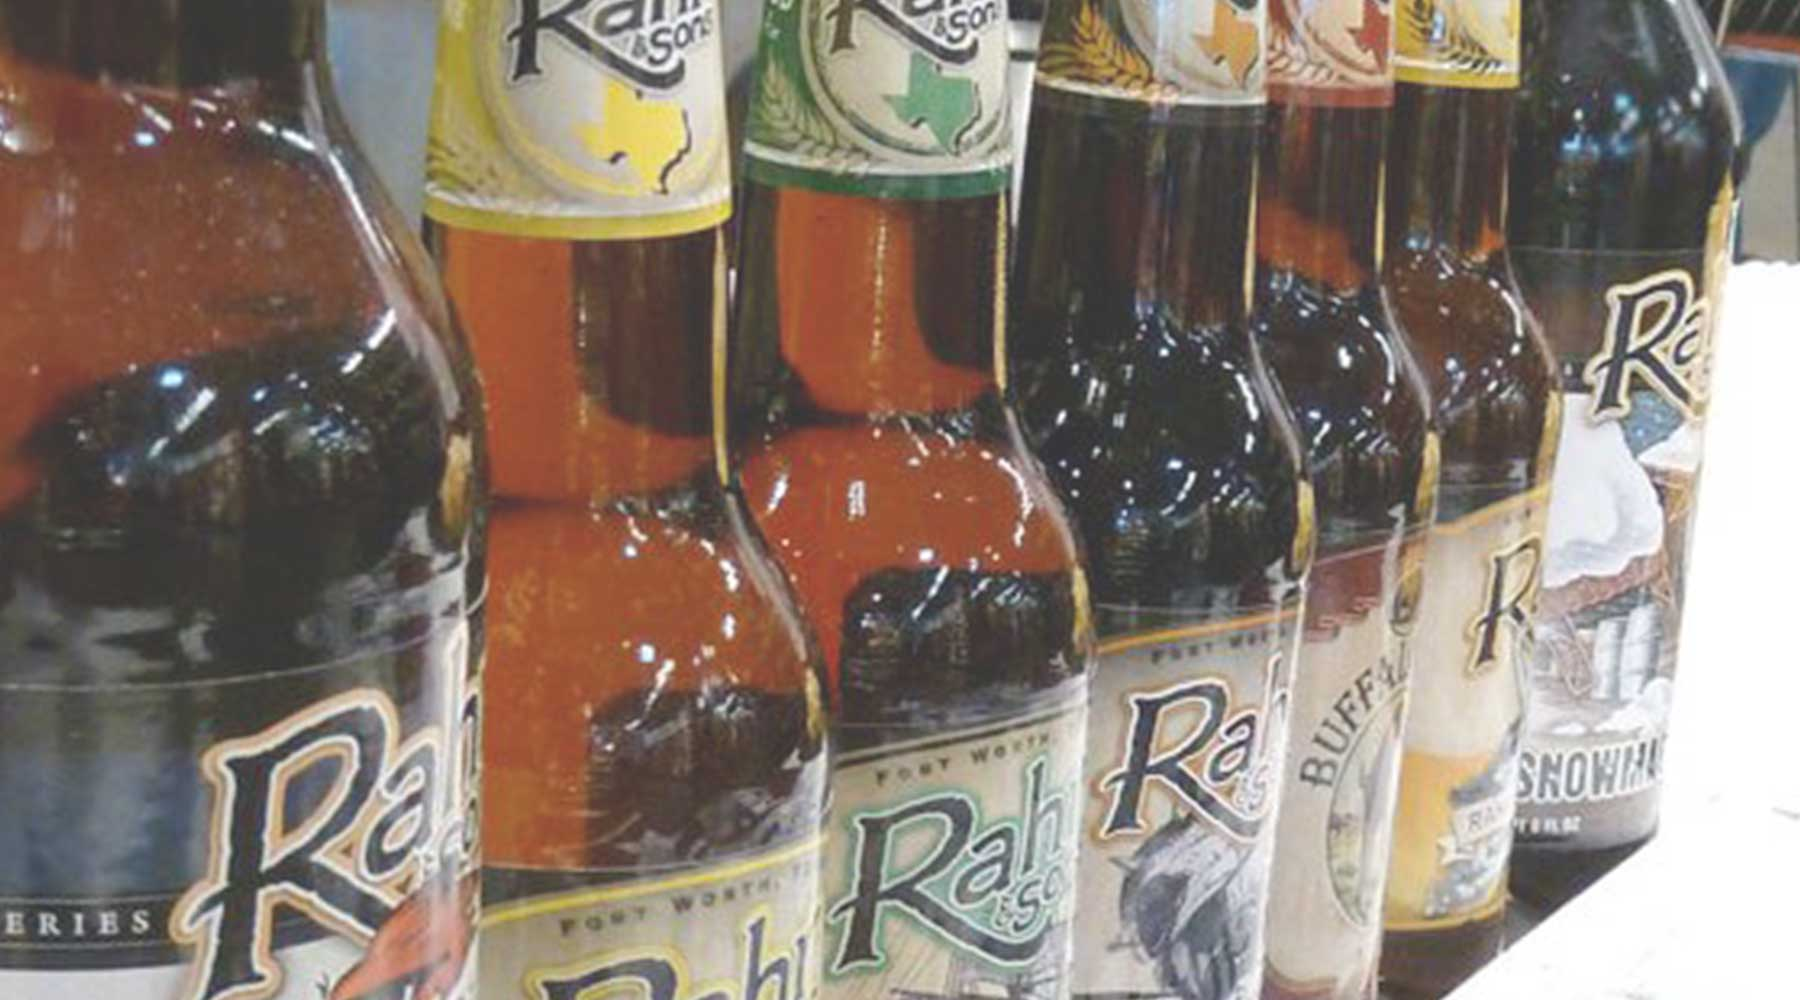 Rahr & Sons Brewing Co. | Just Wine